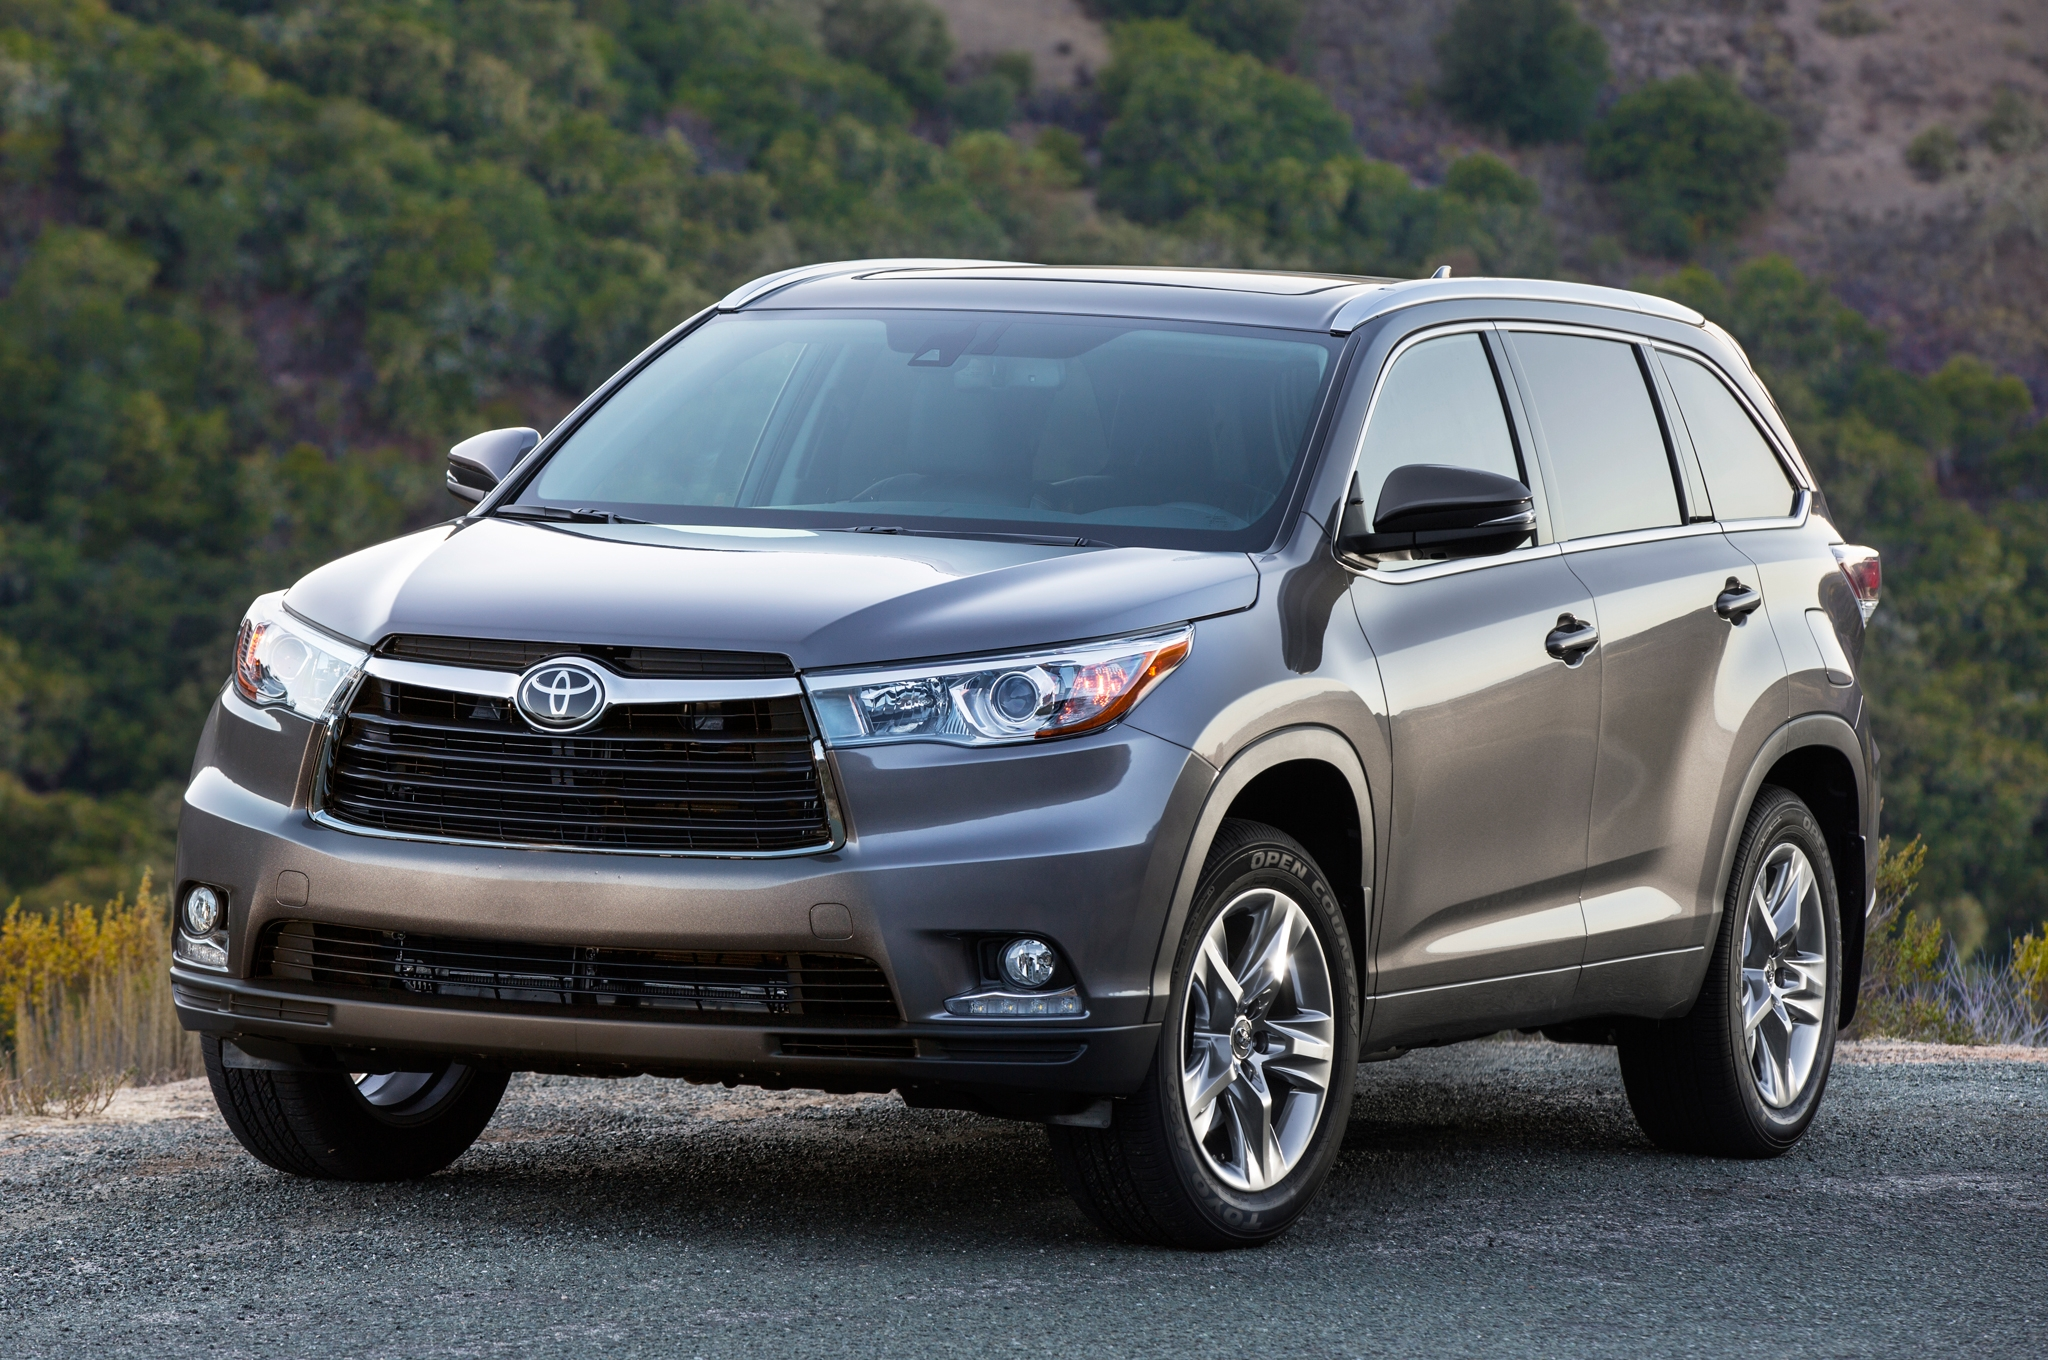 116247-2014-toyota-highlander-limited-awd-review-by-steve-purdy.6-lg